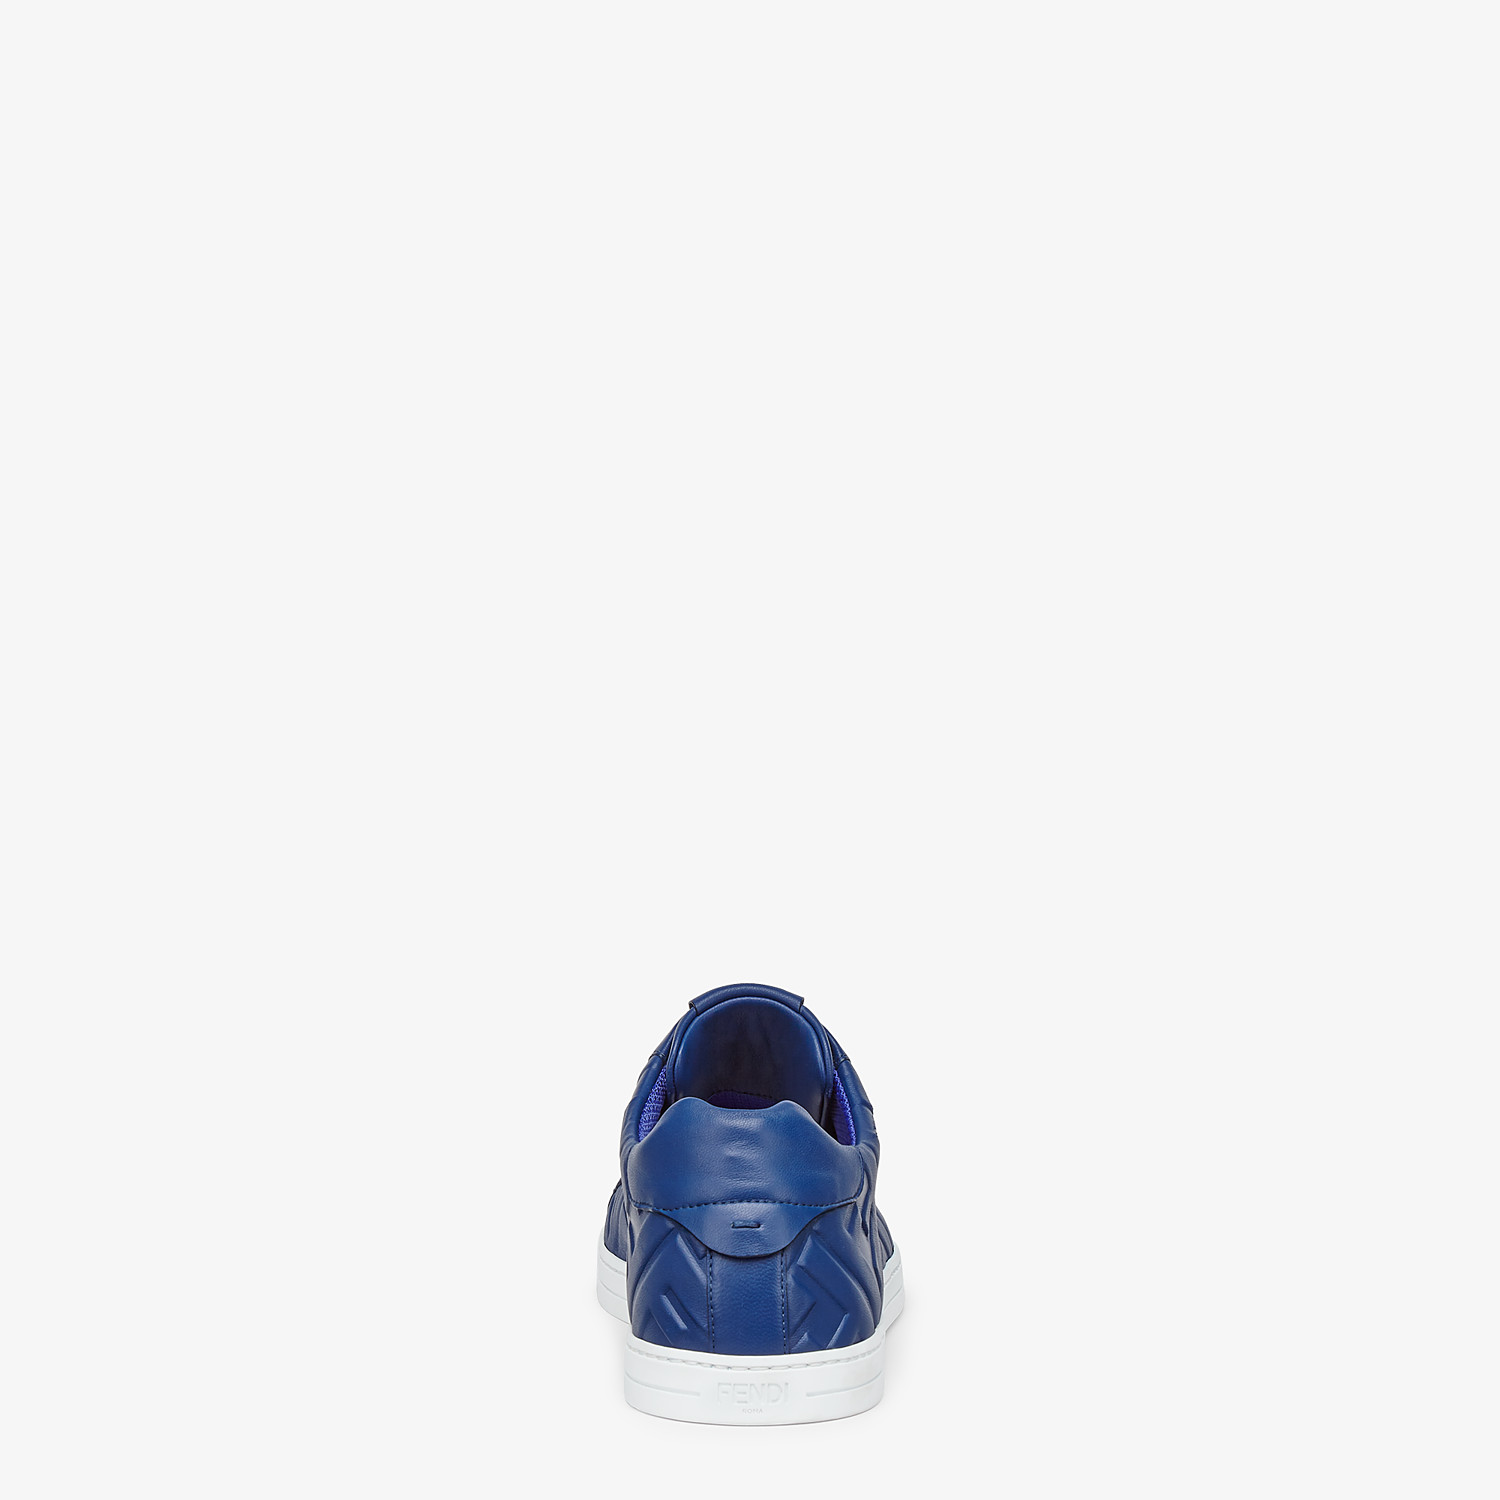 FENDI SNEAKERS - Blue nappa leather low-tops - view 3 detail